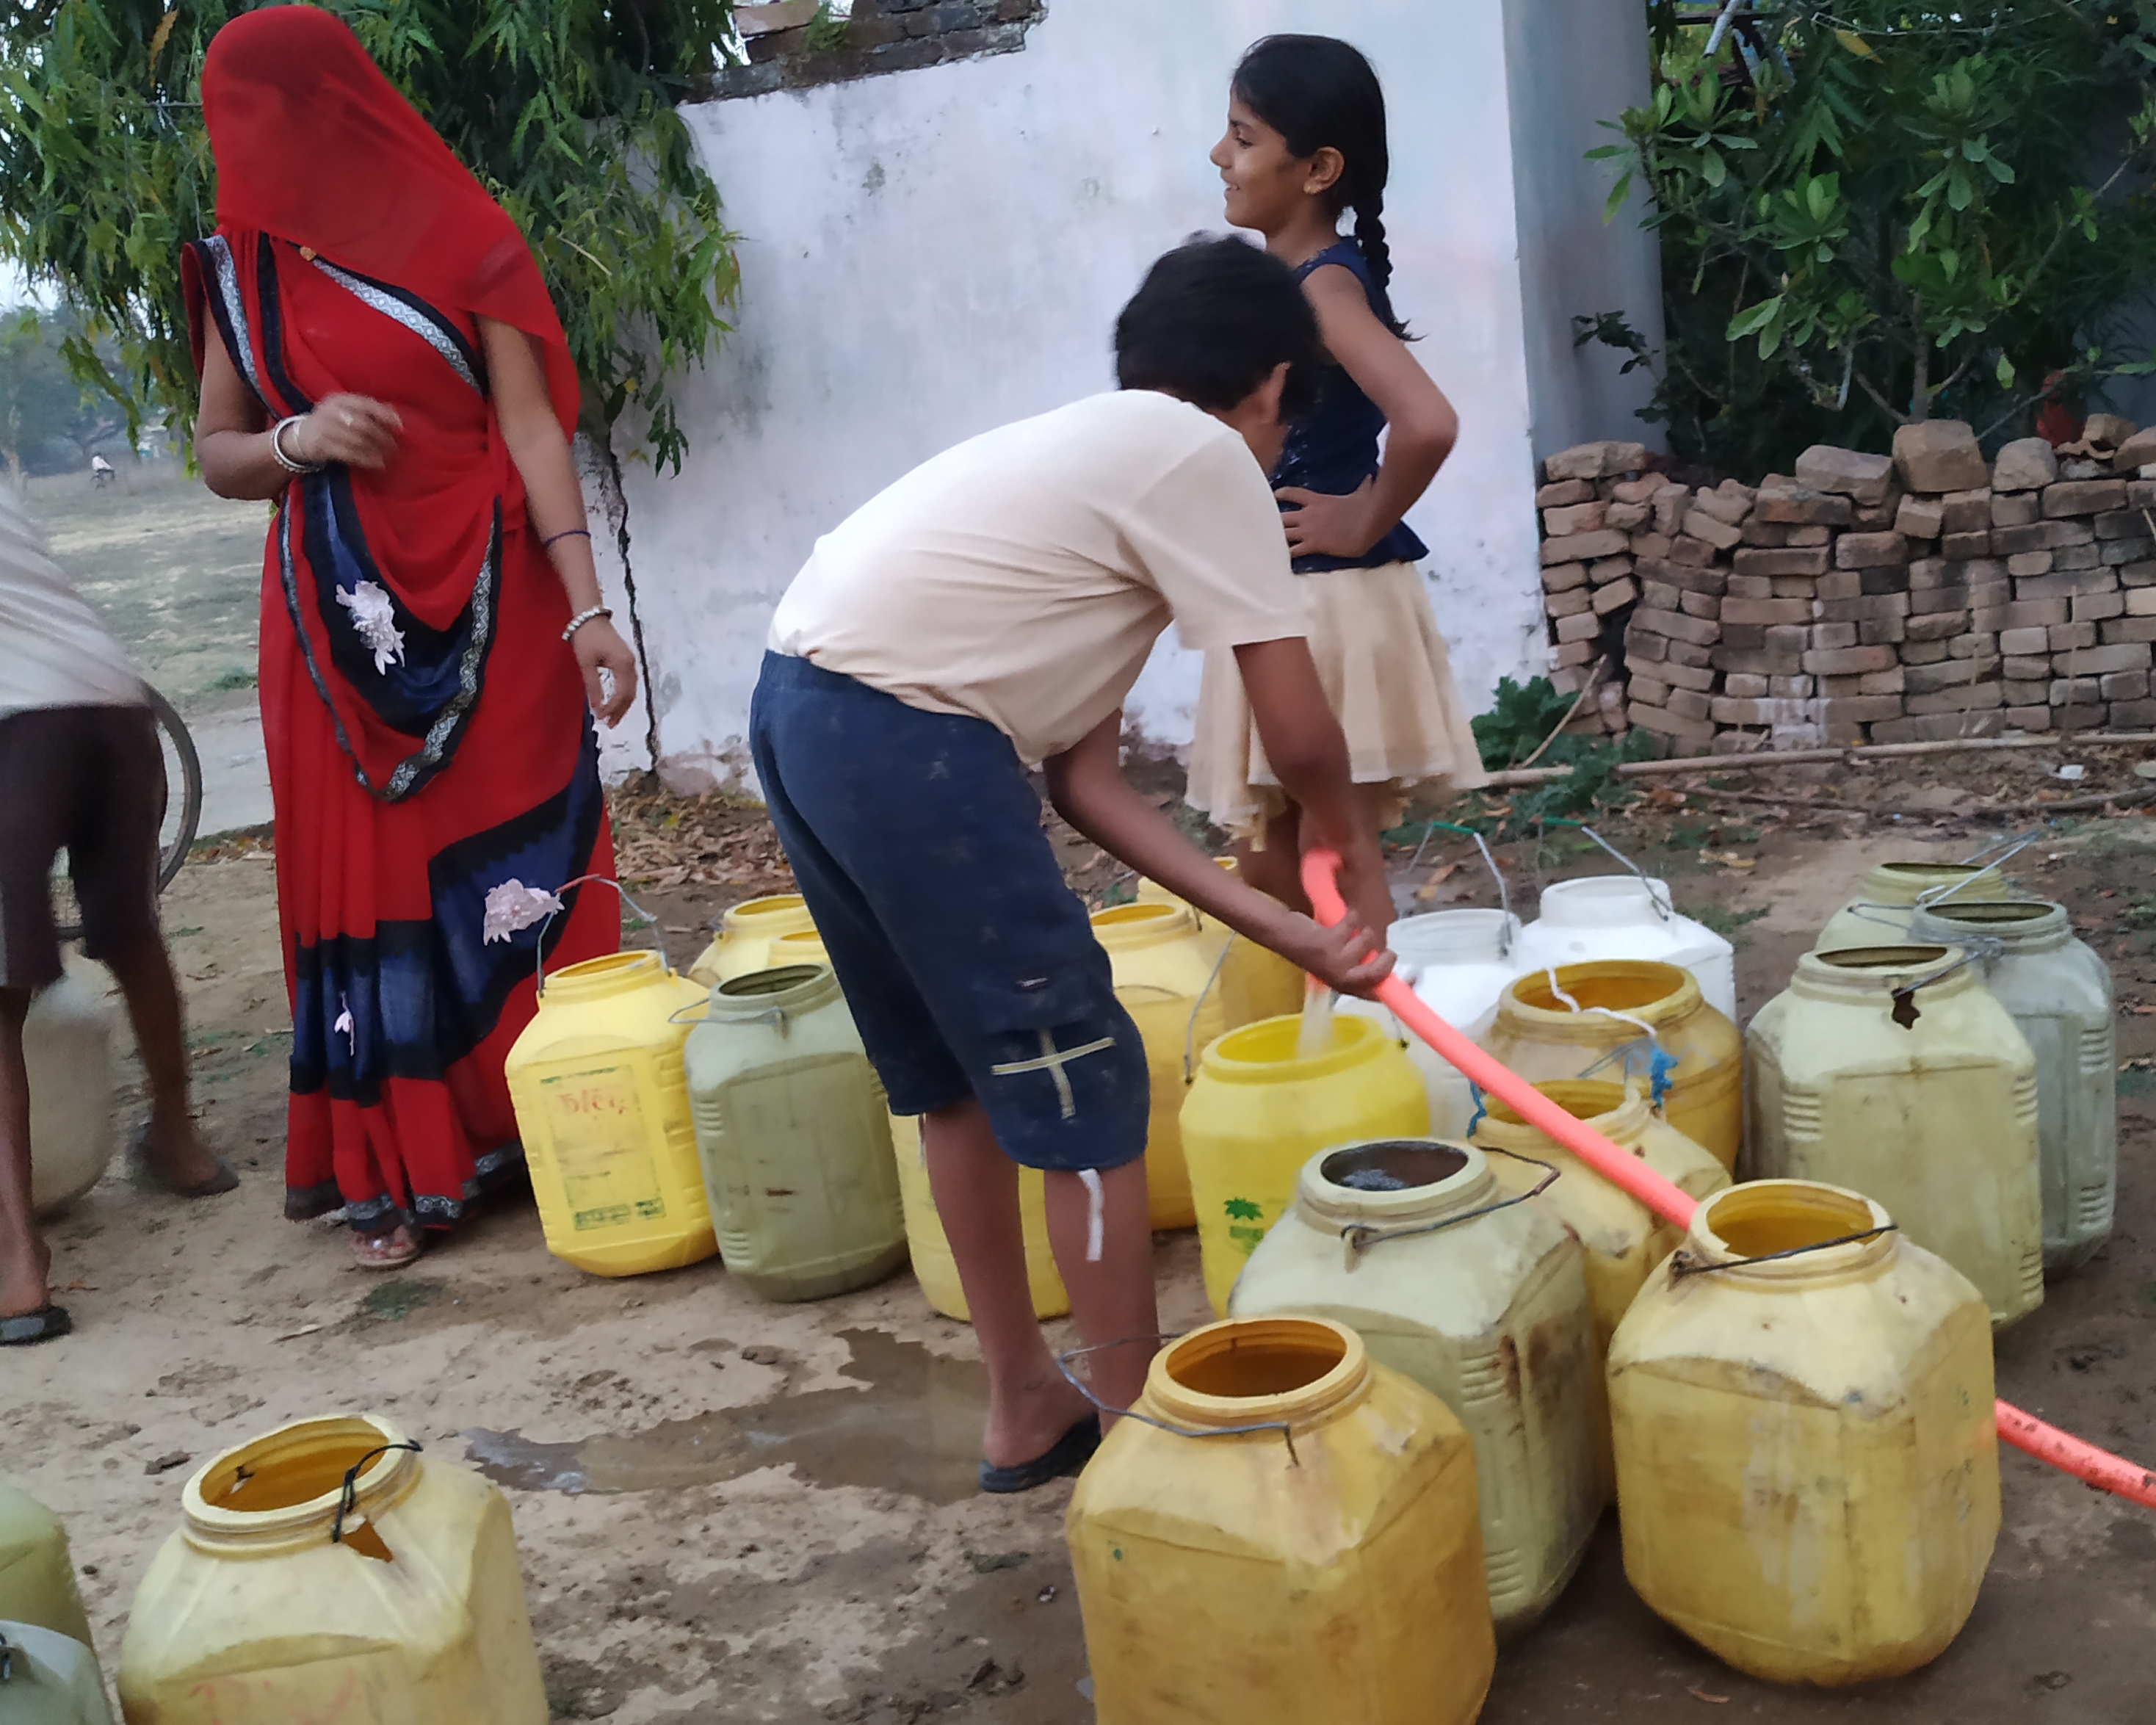 No Water, Electricity, Schools or Healthcare in 'Adarsh' Villages of Vindhya Region